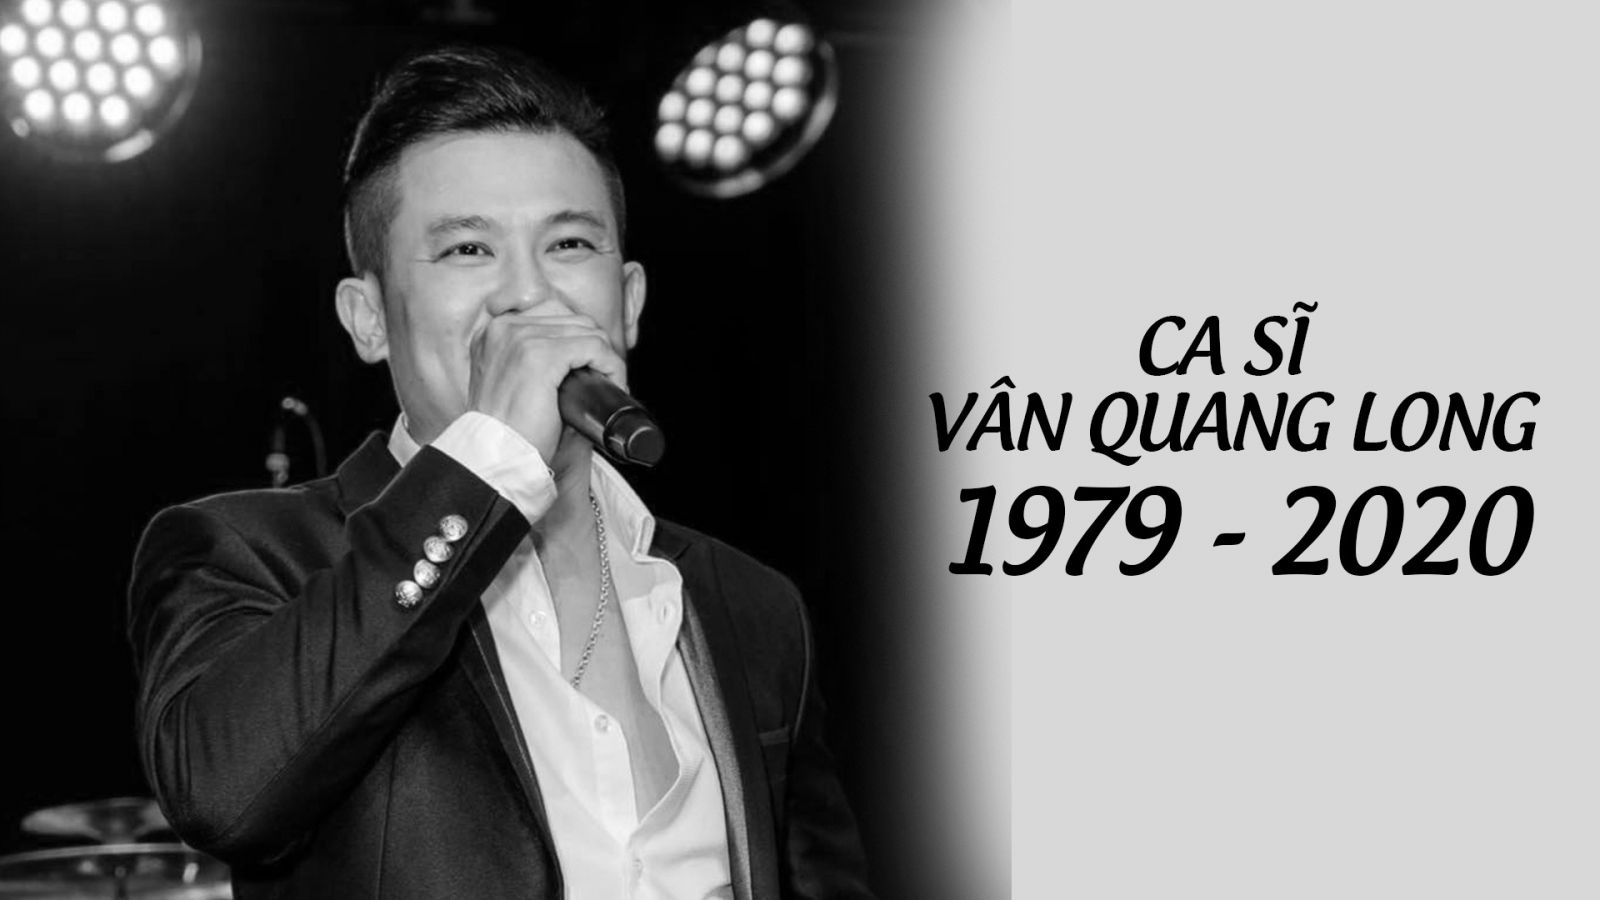 Van Quang Long has been dead for 6 months, but he is still being taken advantage of by bad actors for profit 1